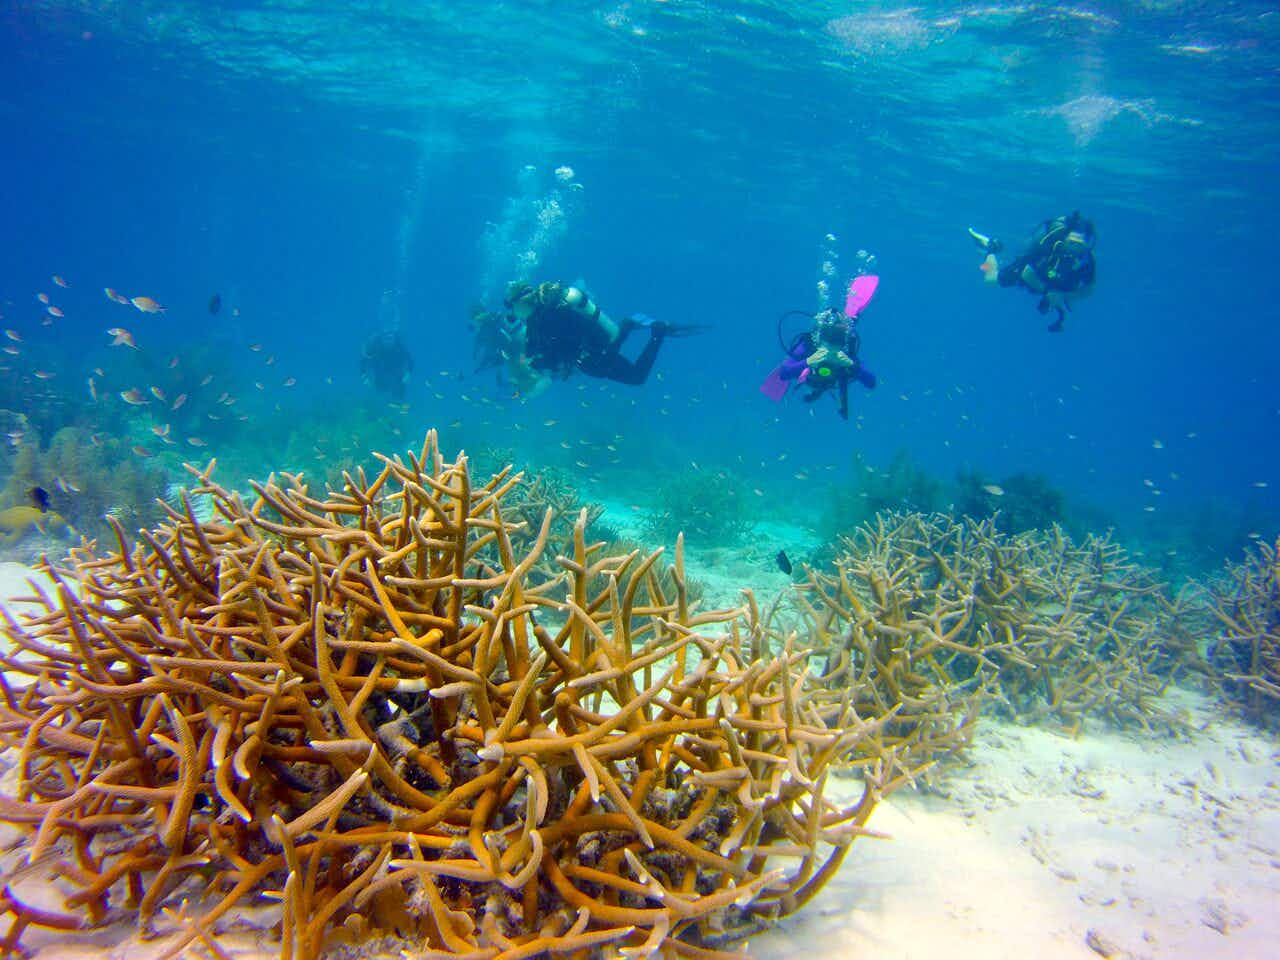 Bonaire waters offer loads of family fun